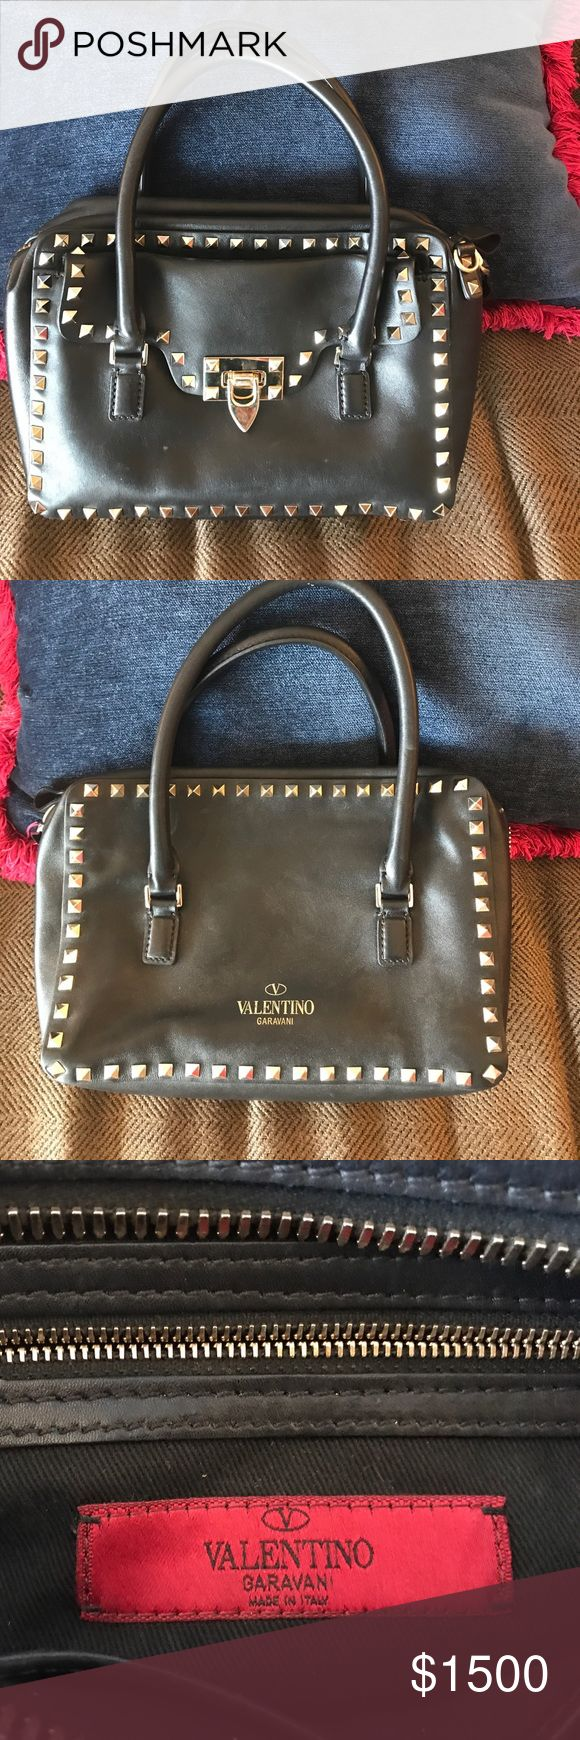 "AUTHENTIC VALENTINO HANDBAG BEAUTIFUL VALENTINO Handbag! Medium sized bag with lots of zipper storage! Can be used as a ""tote"" or a shoulder bag. The bag is missing a stud (pictured above). Simple fix in order to use the strap. Originally purchased for $2675 from Neiman Marcus. Valentino Bags Shoulder Bags"